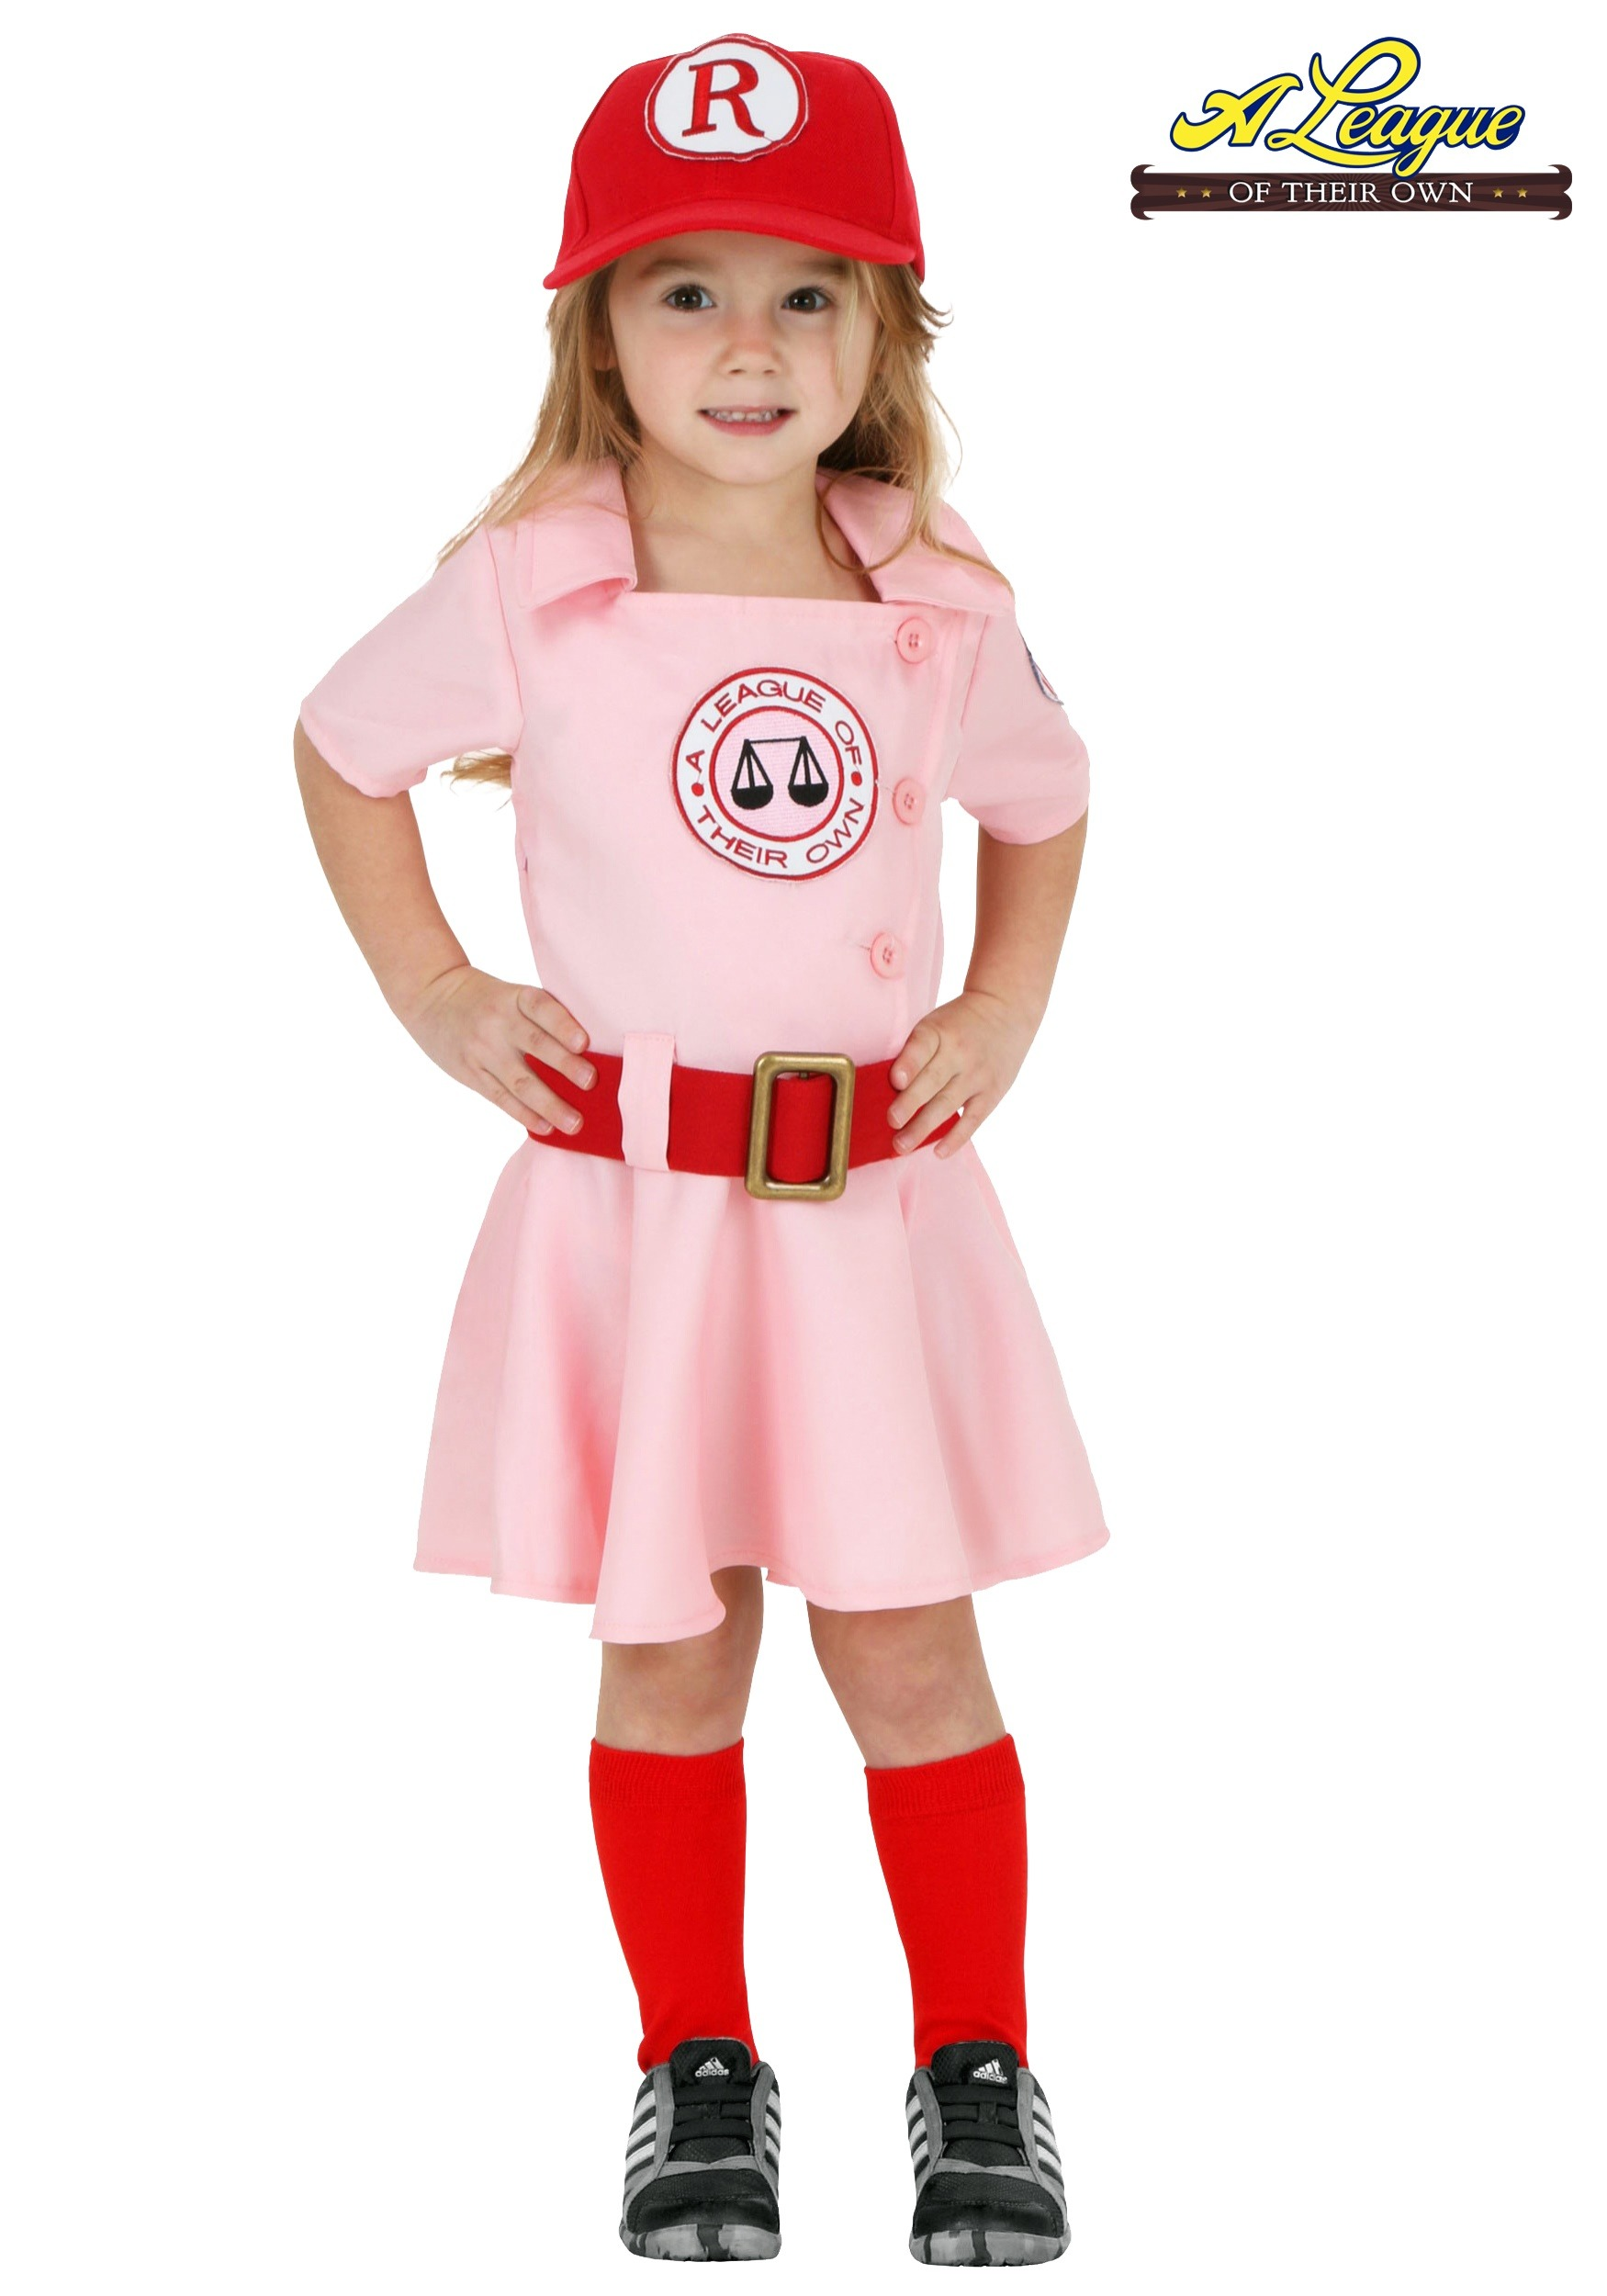 Halloween Costume 77084.Toddler A League Of Their Own Dottie Costume